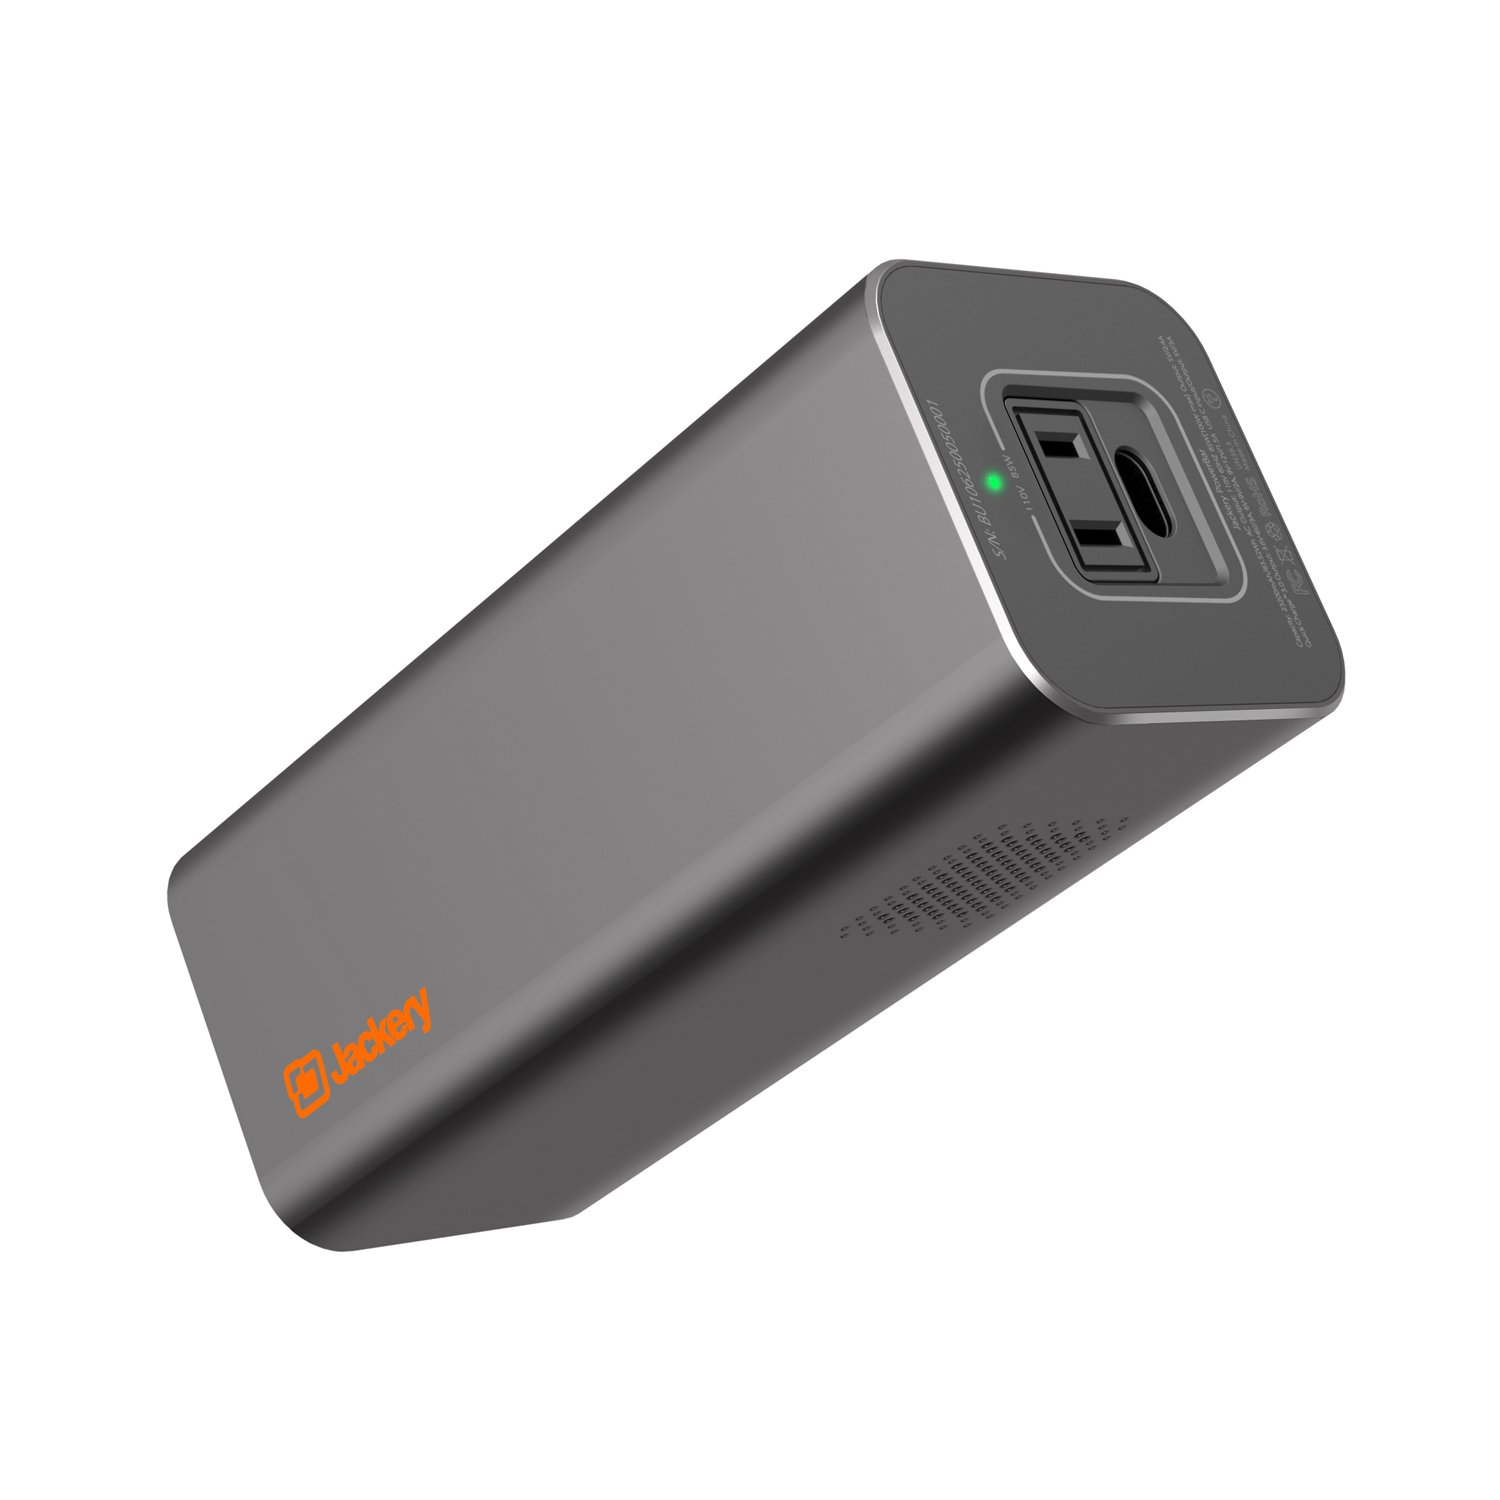 Jackery AC Portable Laptop Charger Power Outdoors PowerBar 23200mAh 85W (100W Peak) Universal Travel Laptop Power Bank & External Battery Pack Compatible with MacBooks/Notebook/Laptops by Jackery